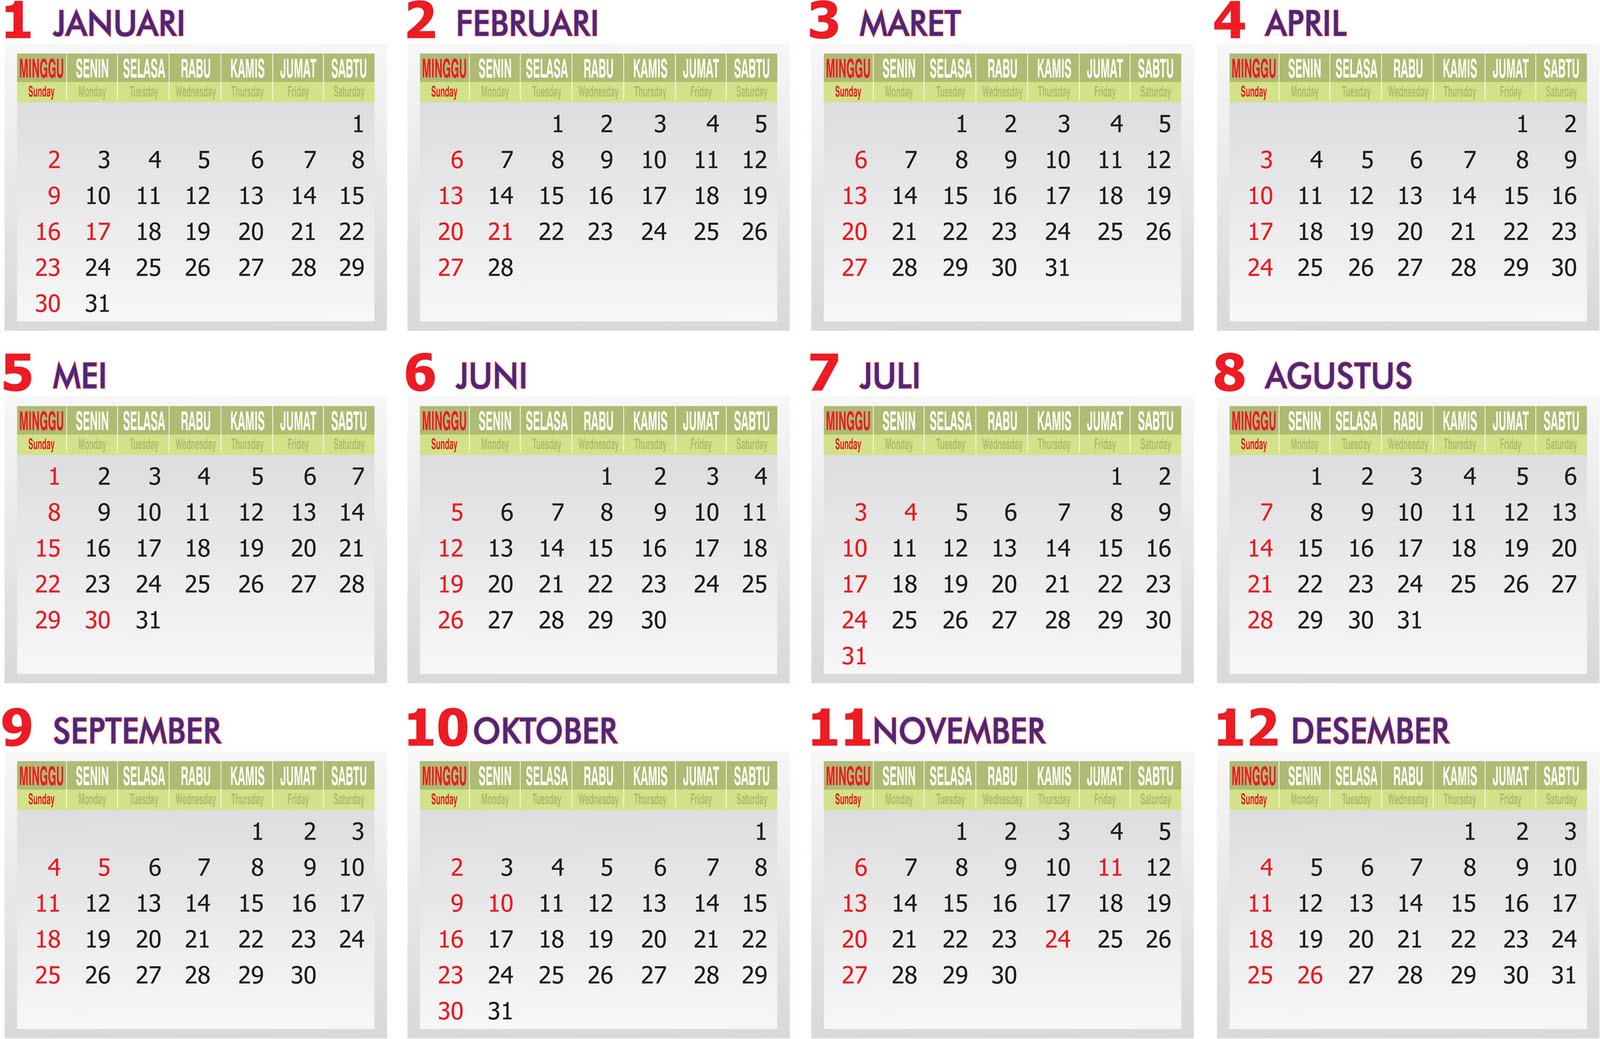 1039 jpeg 279kb kalender 2011 download 994 x 823 jpeg 172kb kalender ...